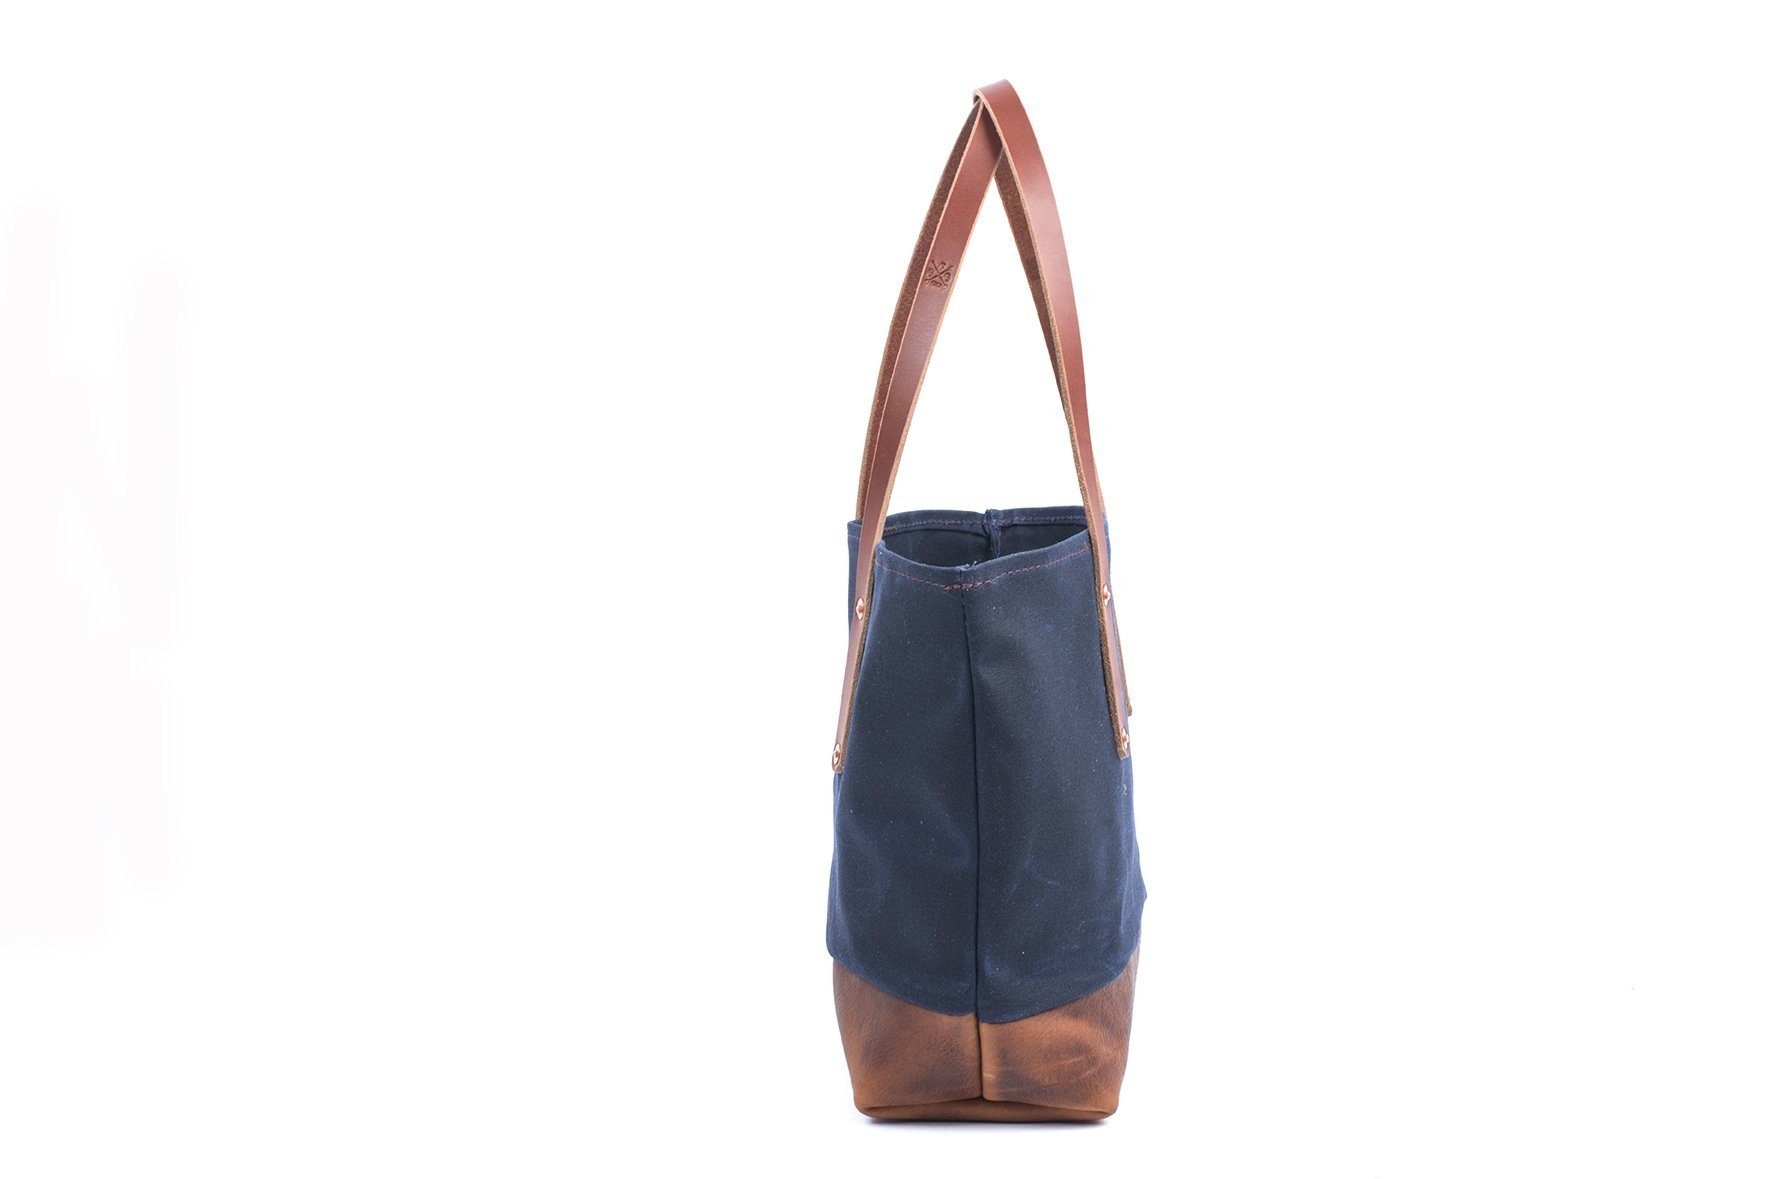 b613bdfd94c AVERY WAXED CANVAS TOTE BAG - MEDIUM - Go Forth Goods